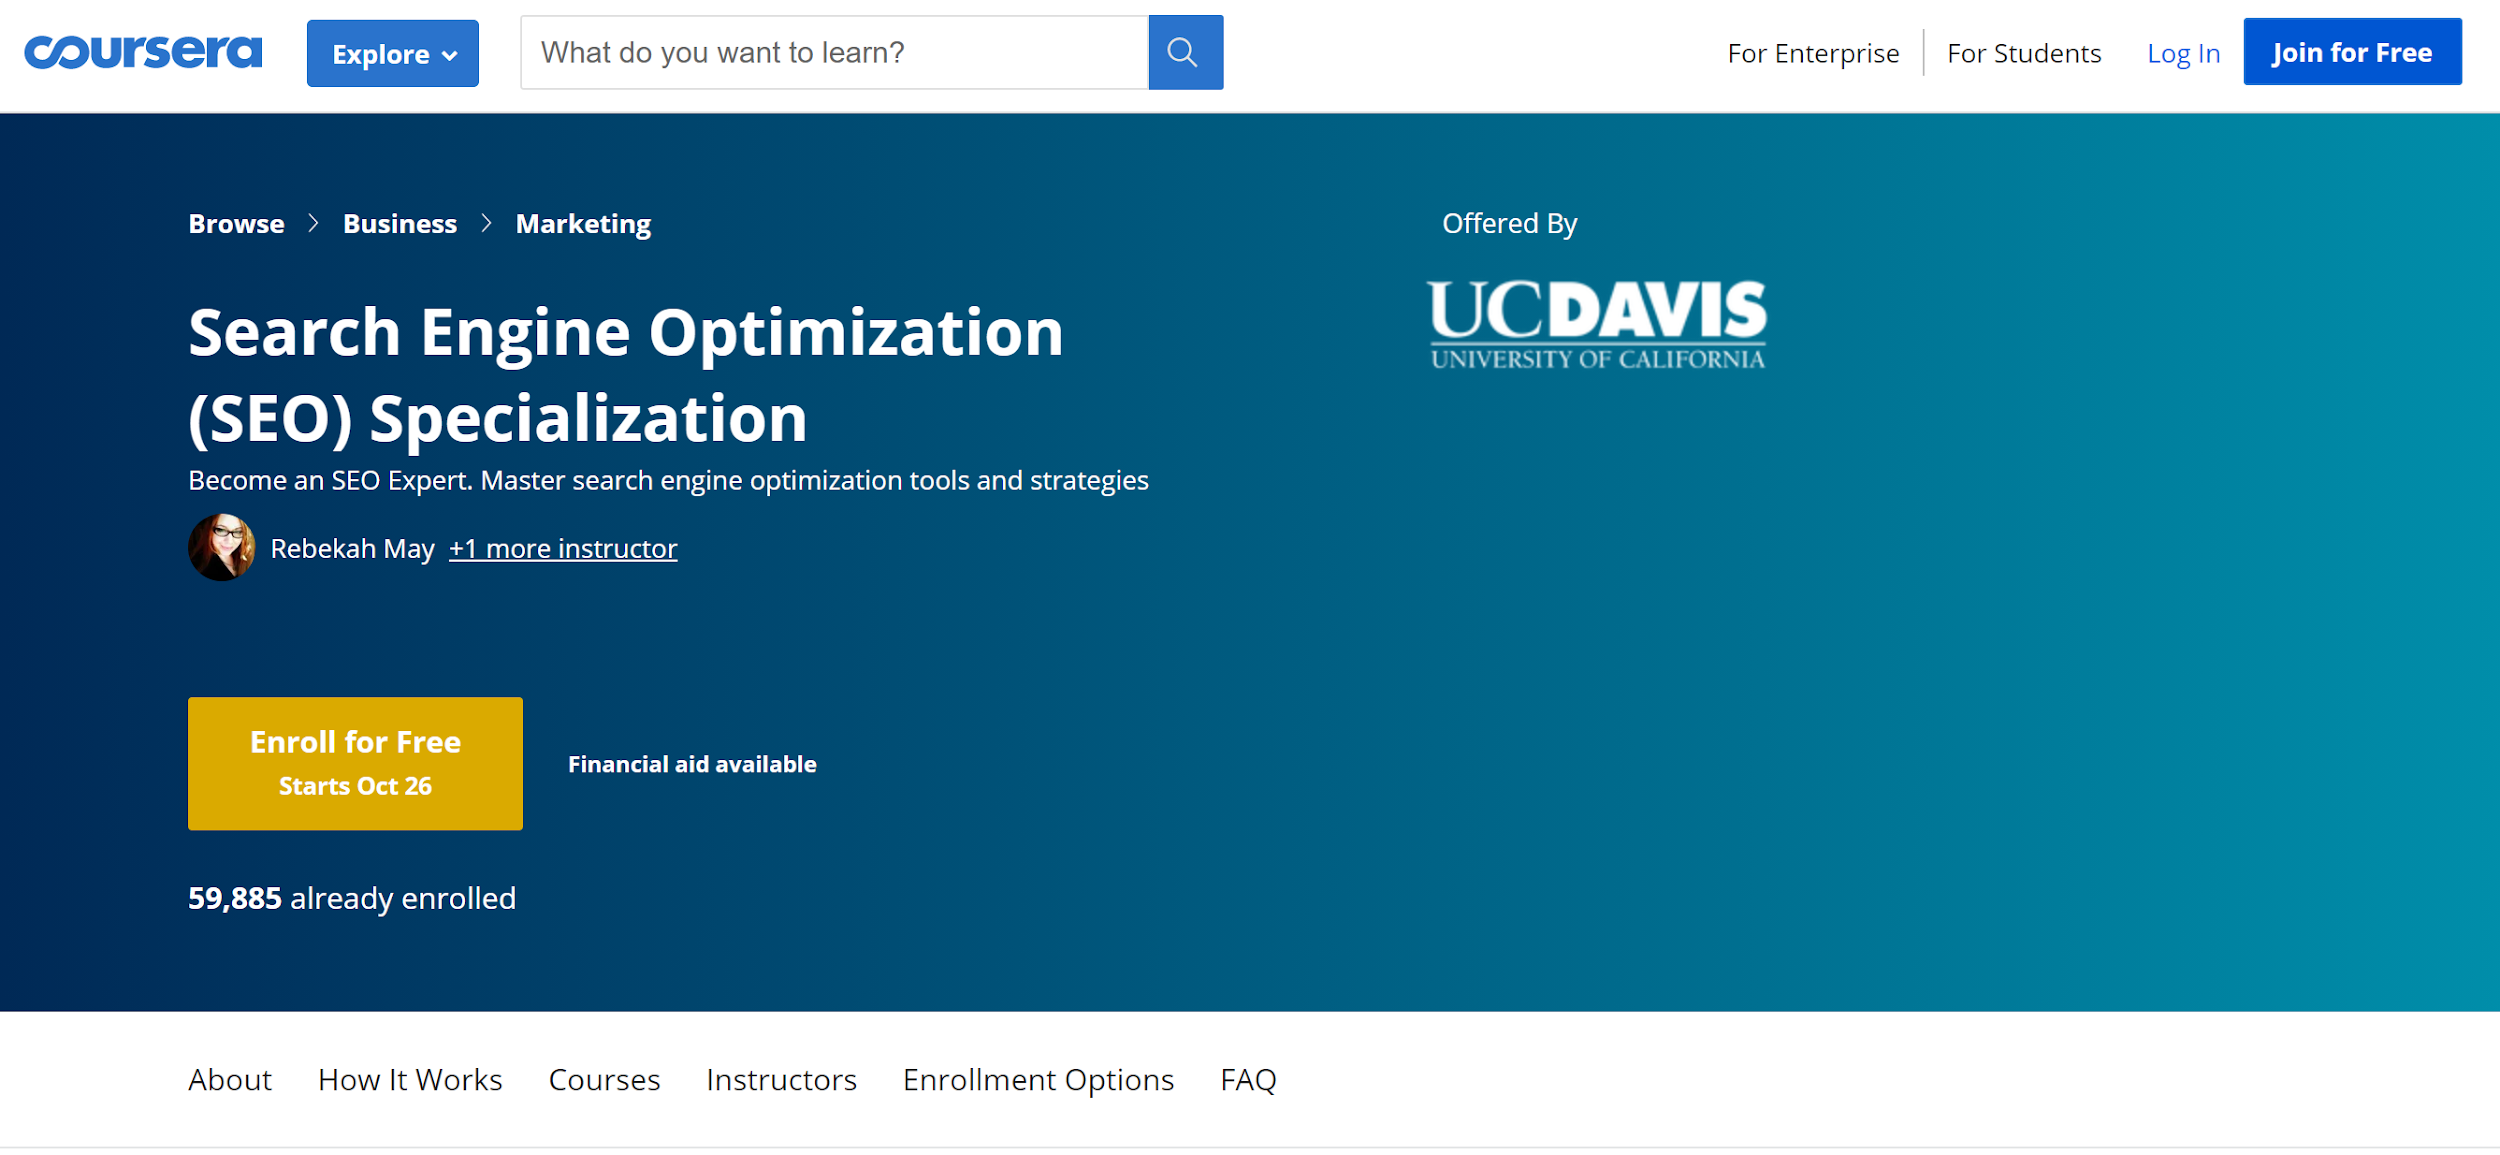 Coursera Search Engine Optimization (SEO) Specialization